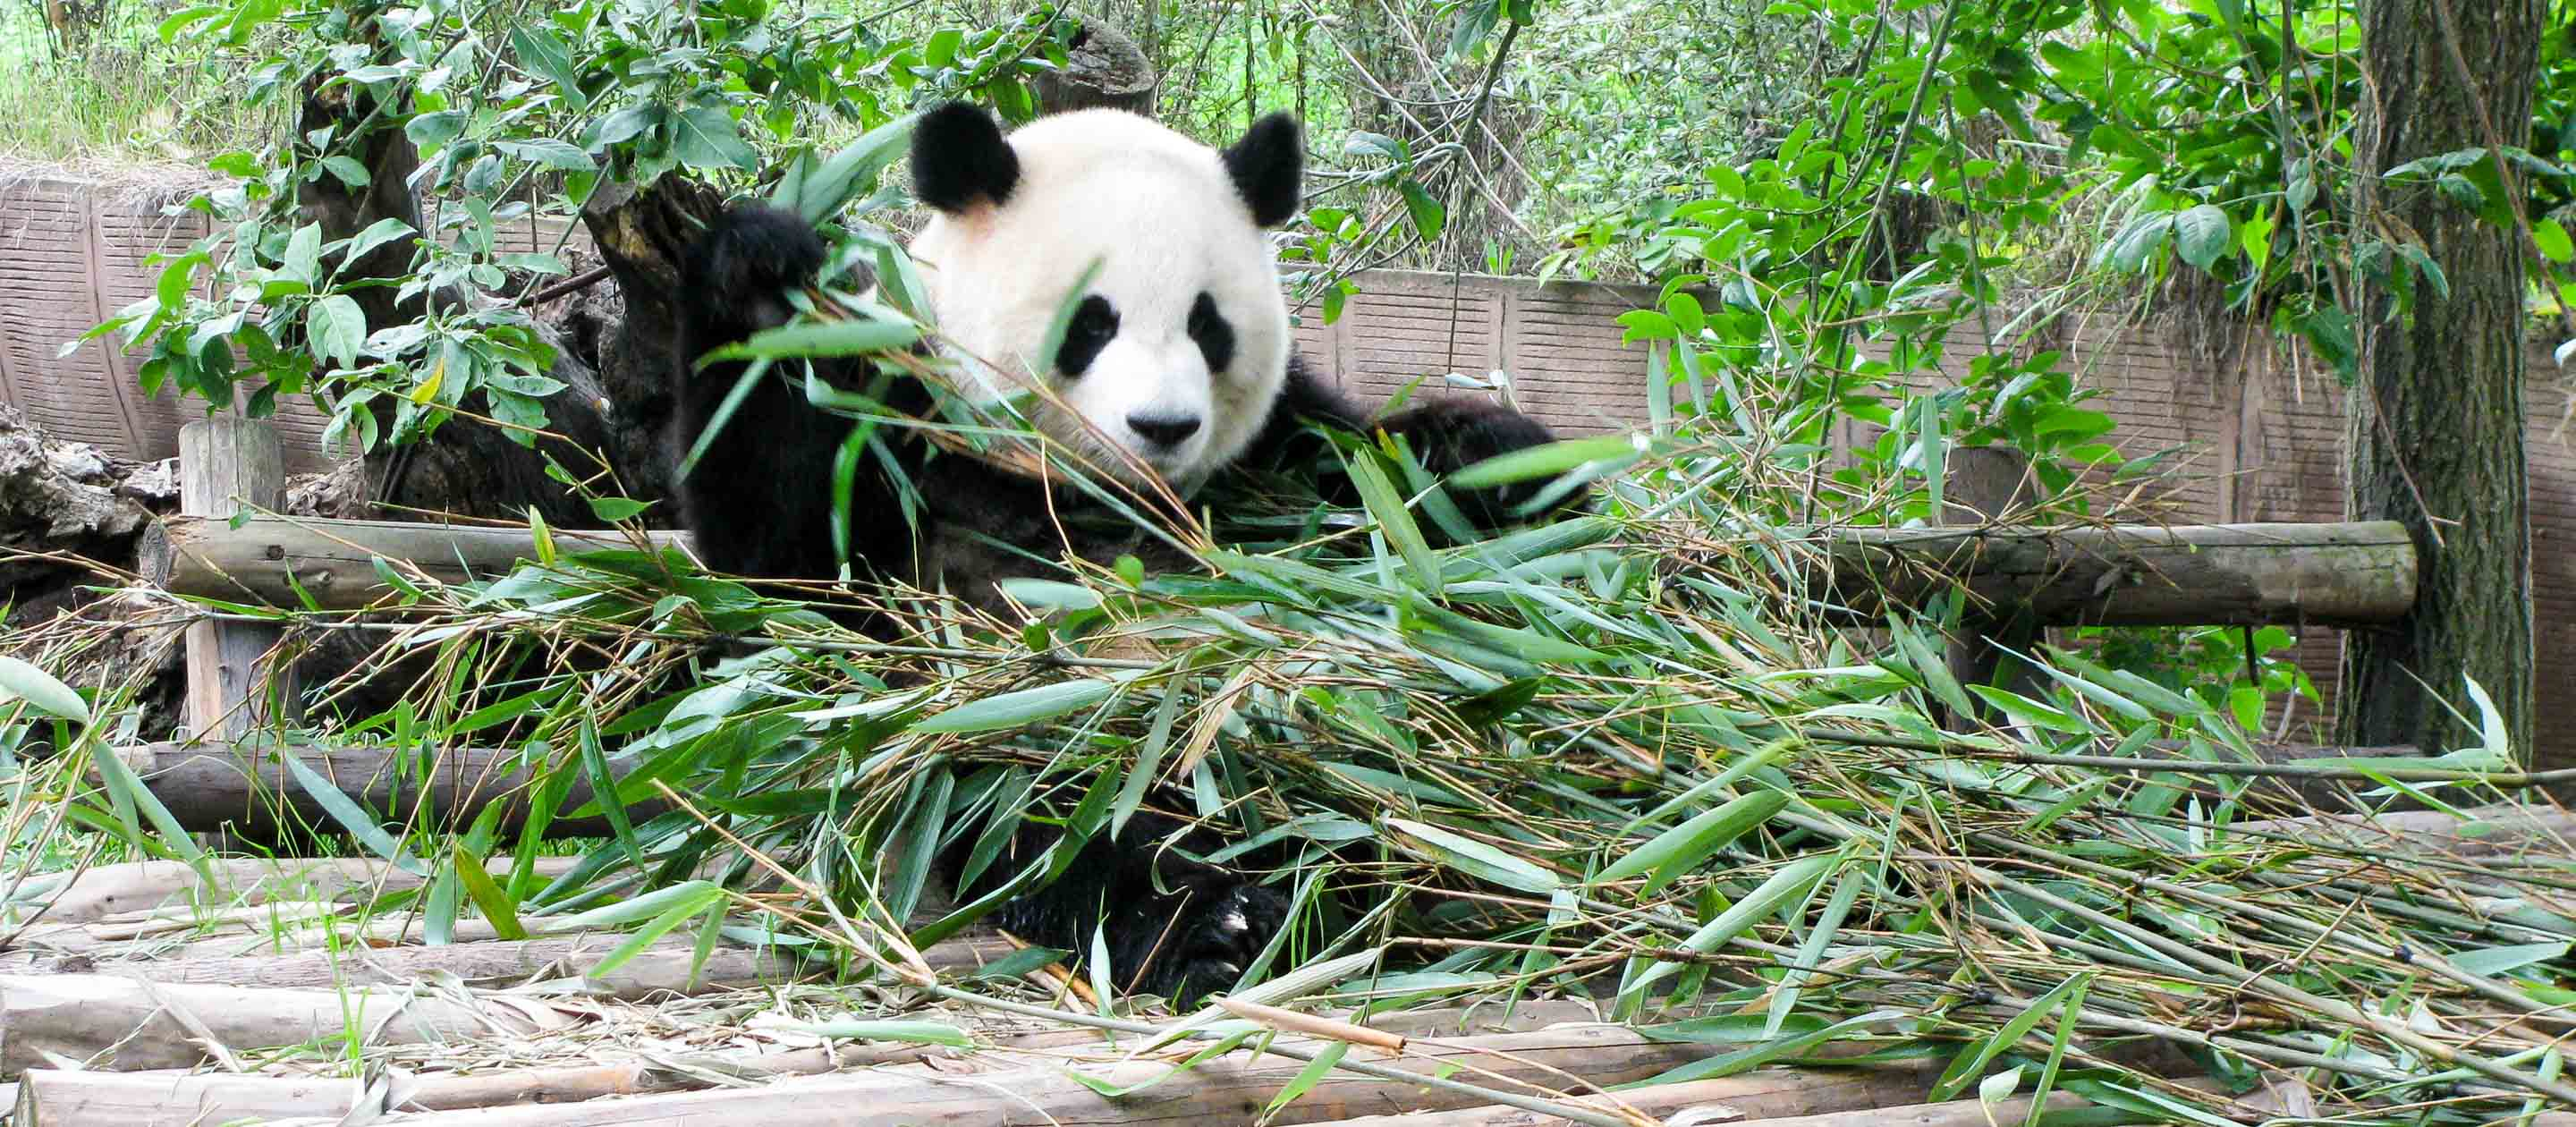 Panda plays in grass in China